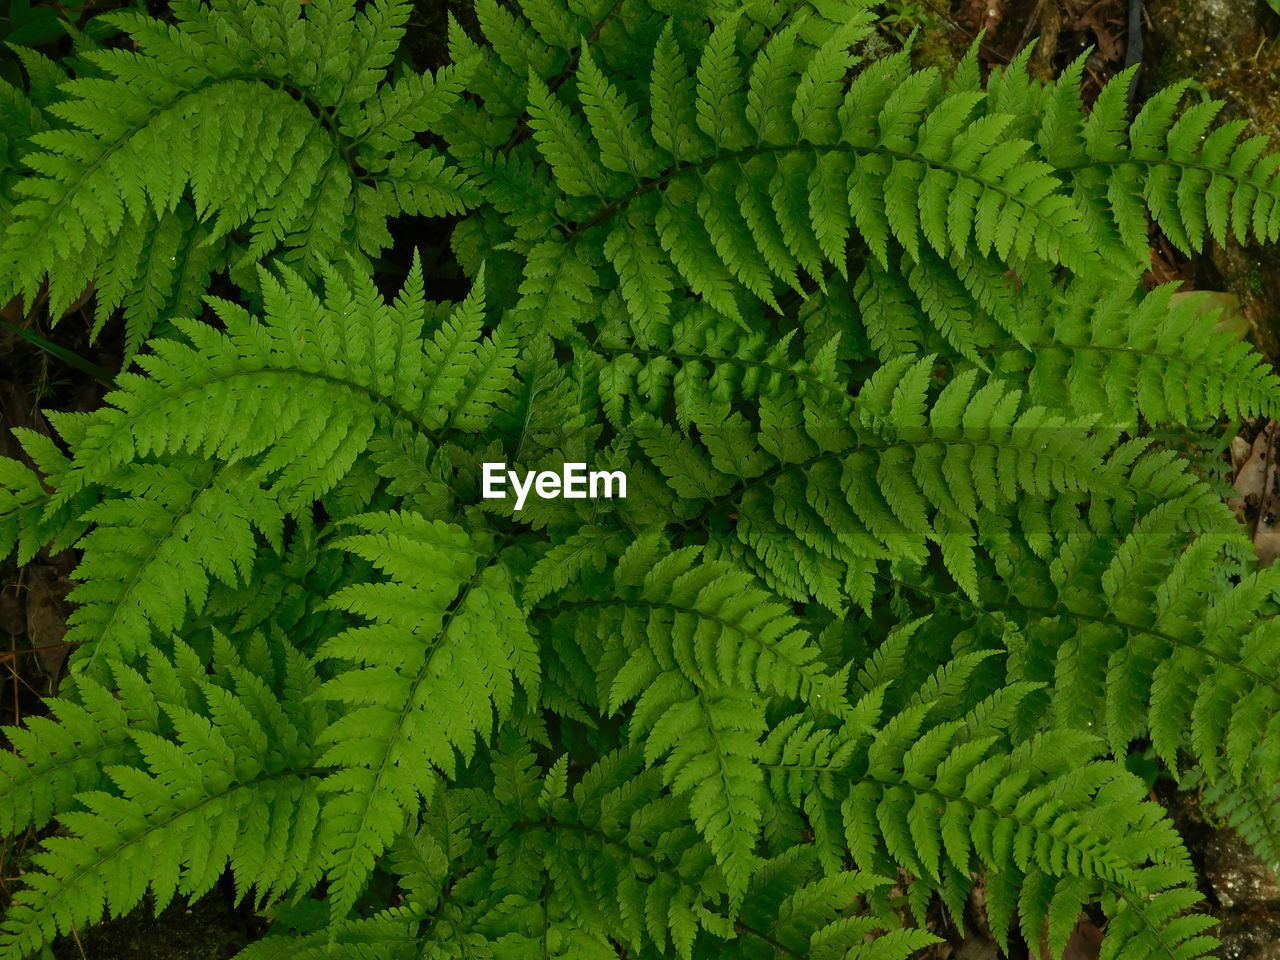 green color, growth, fern, plant, full frame, leaf, no people, plant part, backgrounds, high angle view, beauty in nature, nature, day, freshness, close-up, directly above, foliage, pattern, lush foliage, tree, leaves, rainforest